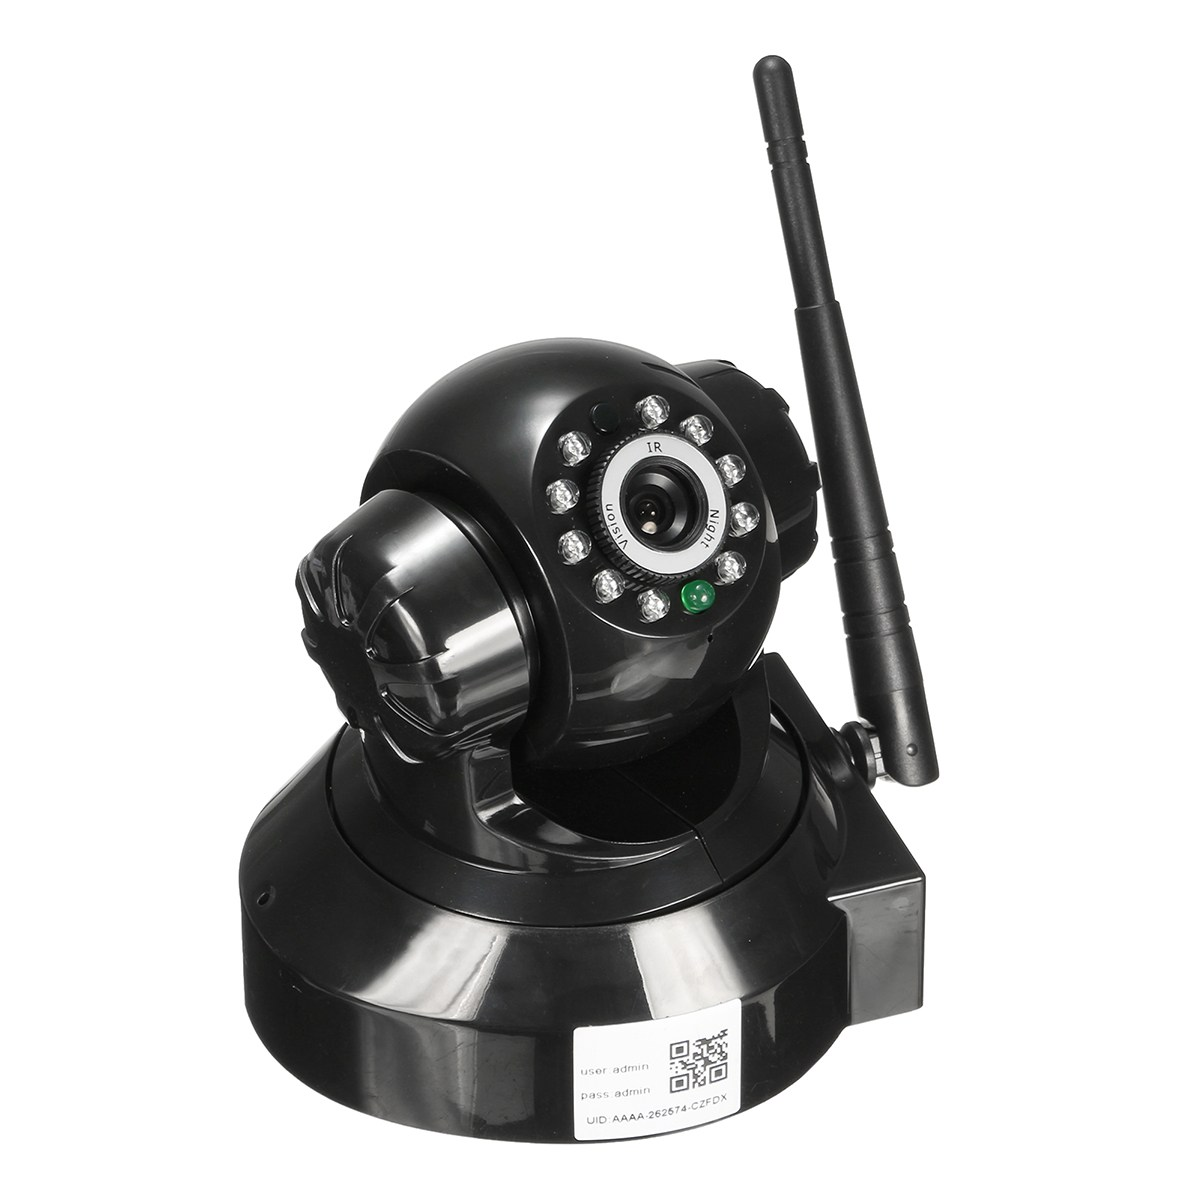 NEW Safurance Wireless HD 720P P2P WiFi Network Home Security Surveillance Pan Tilt IP Camera Safety<br>